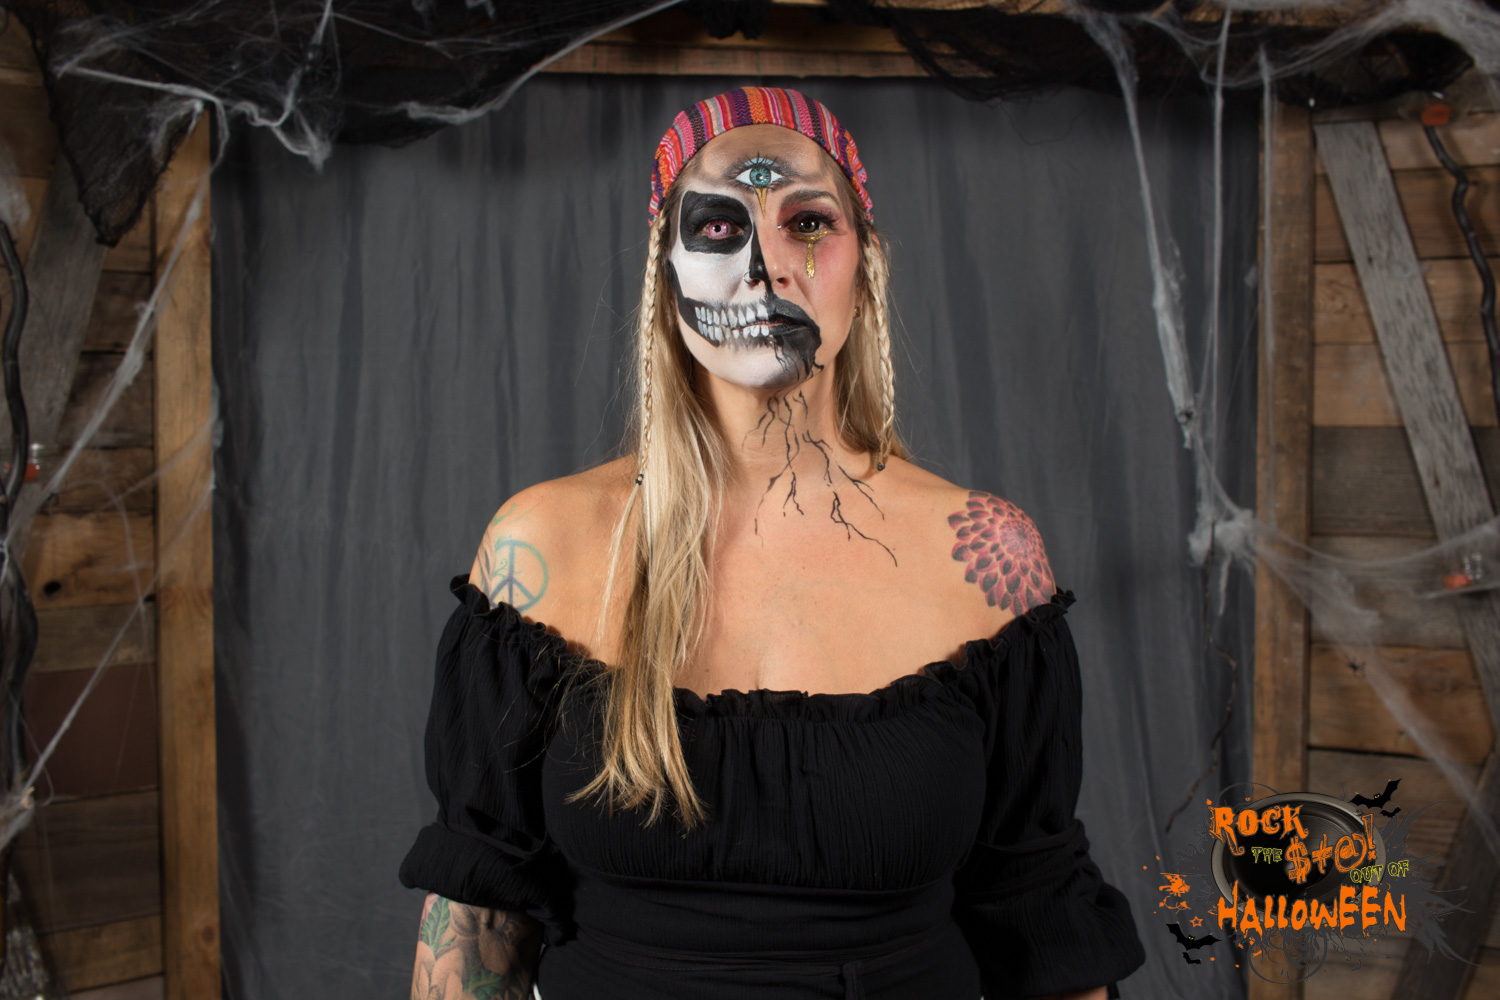 Halloween-PhotoBooth-015-6723